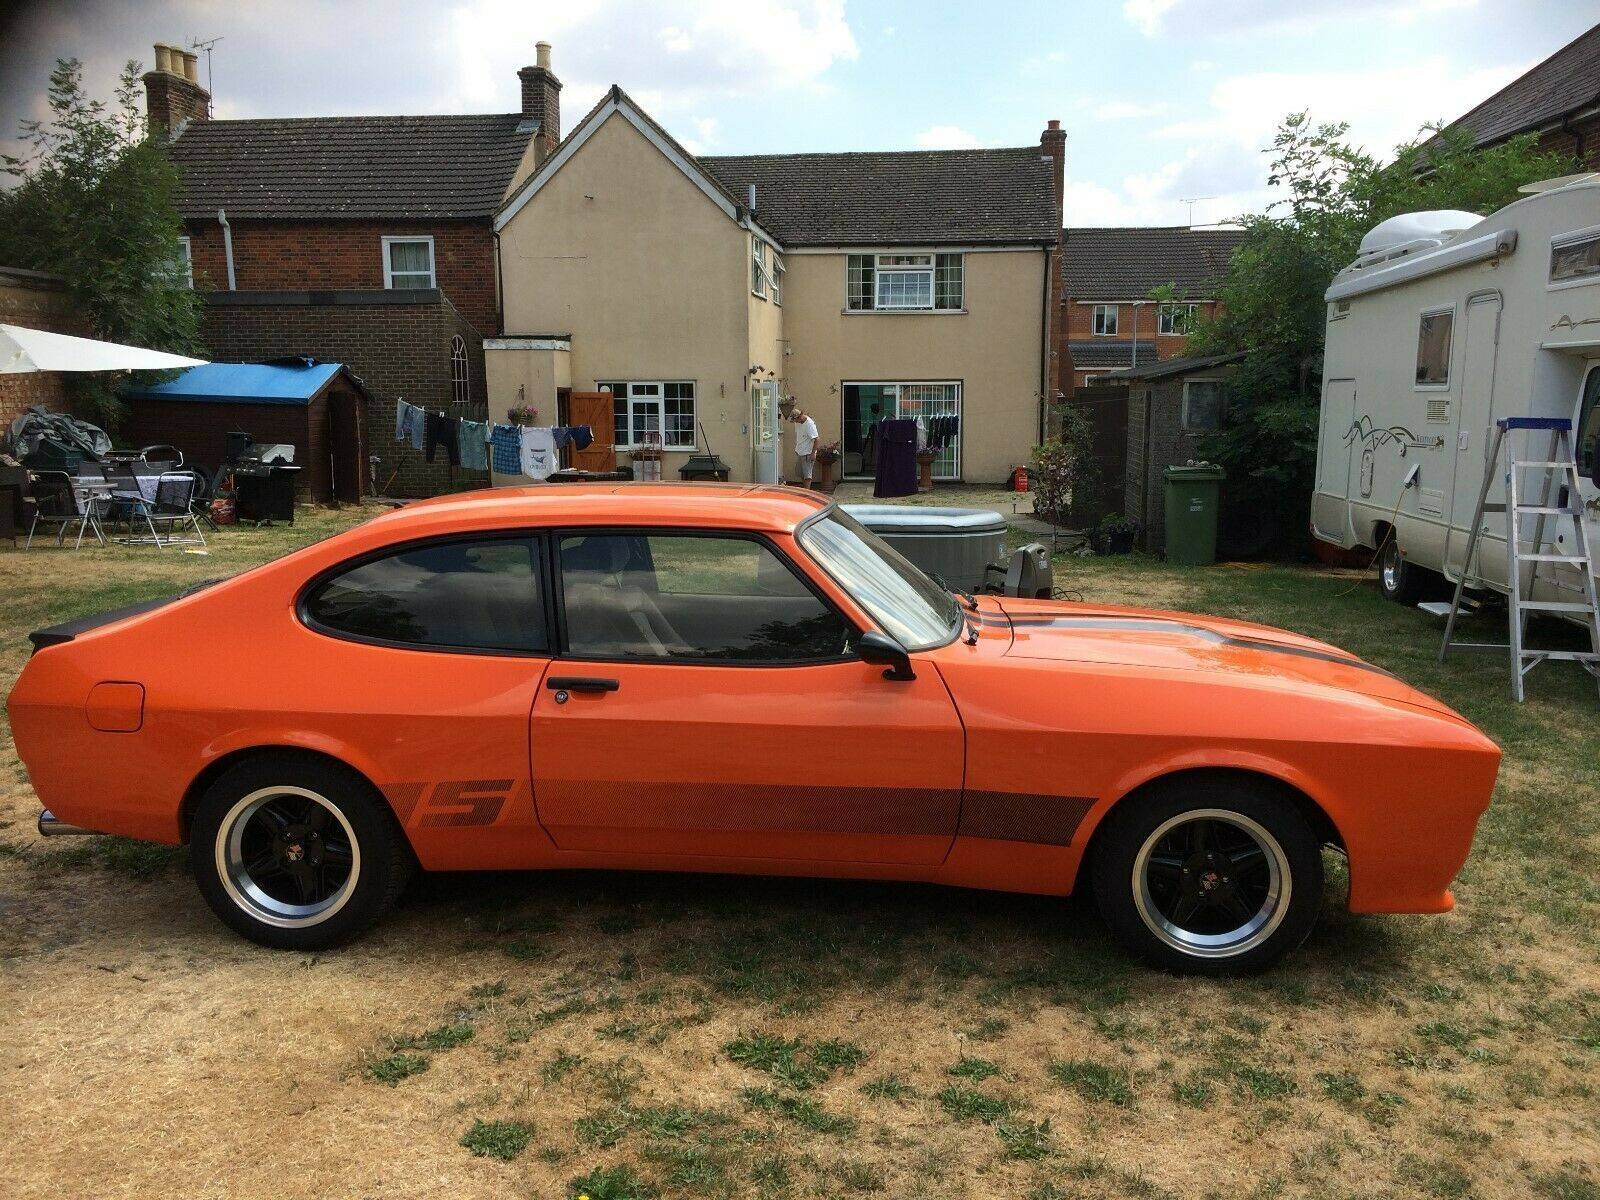 Details About Ford Capri V8 Ford Capri Ford Classic Cars